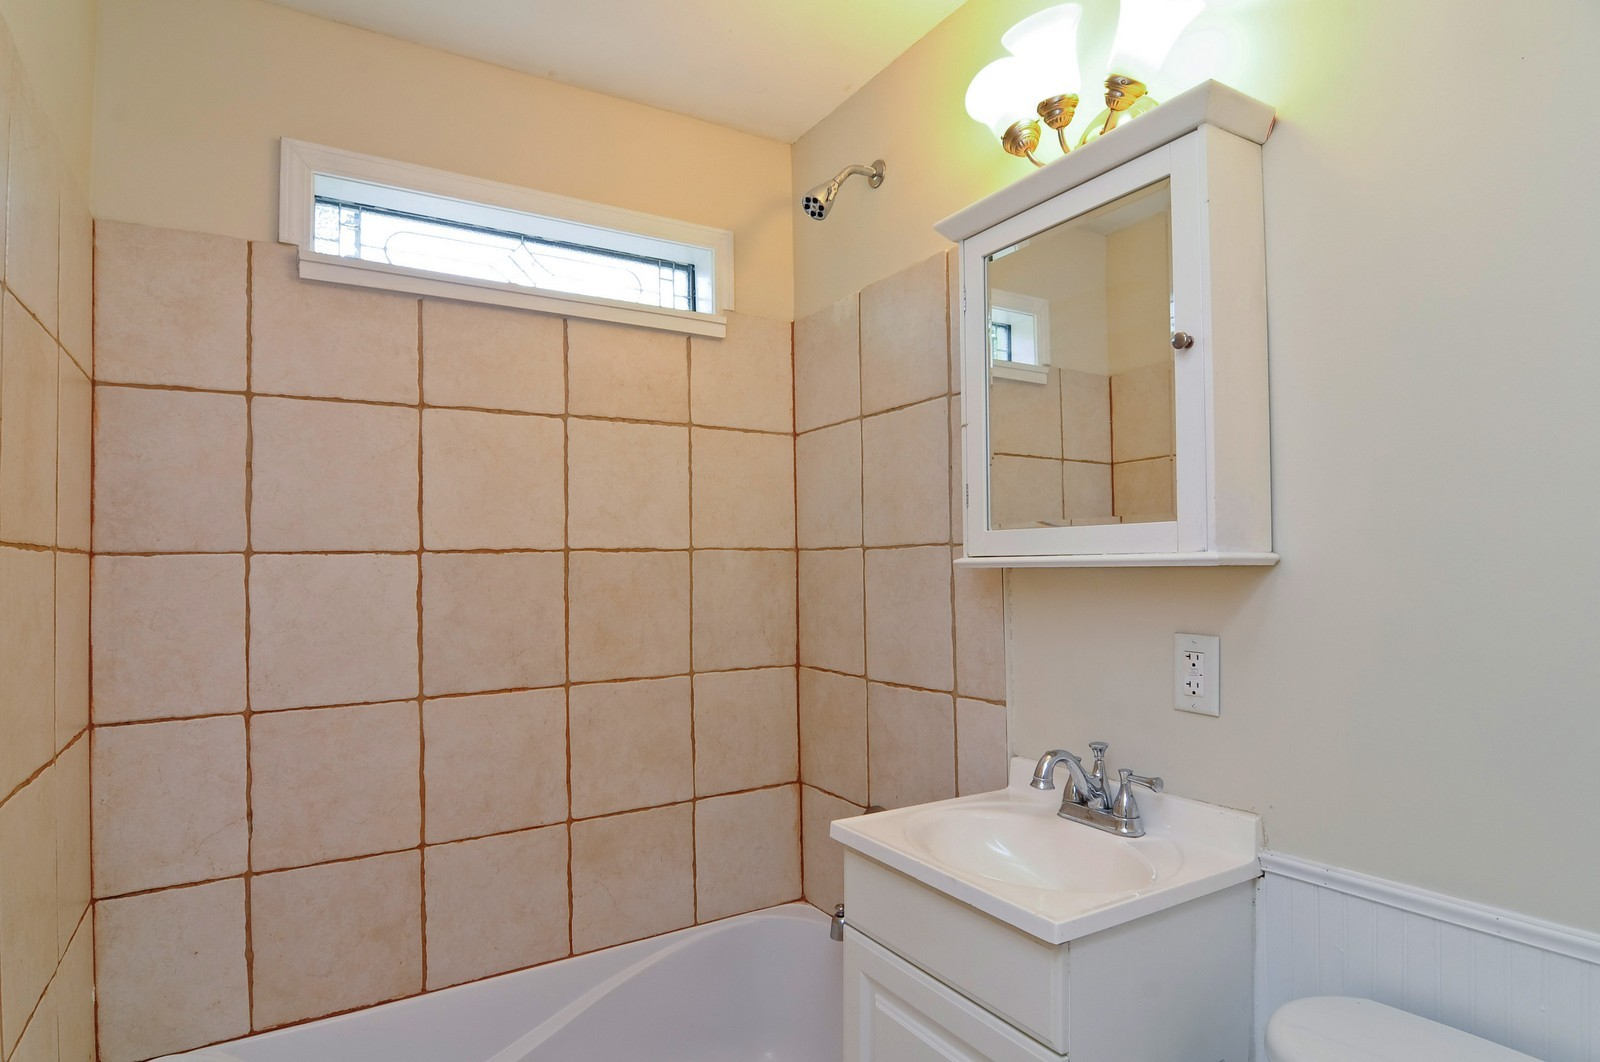 Real Estate Photography - 321 N Bellevue, Round Lake Park, IL, 60073 - Bathroom